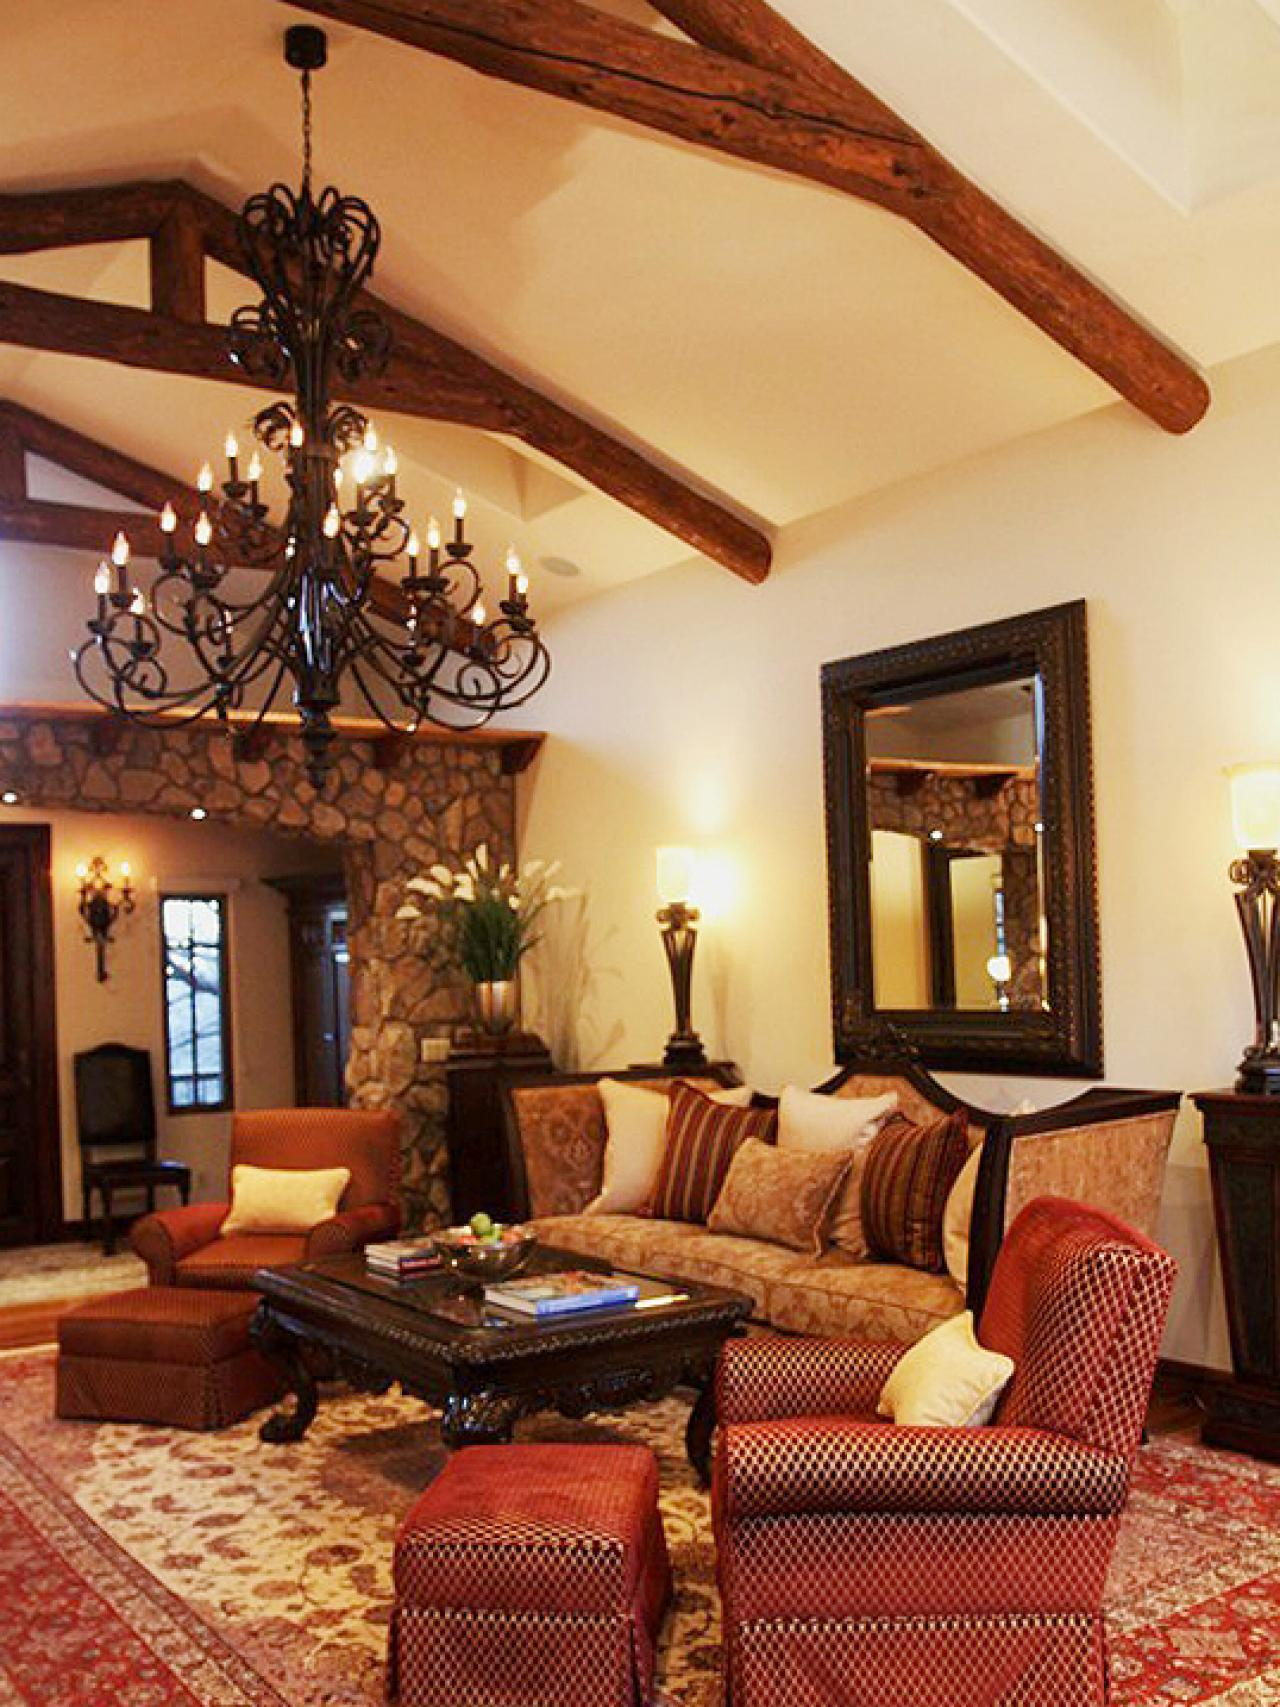 Home Interior Design For Living Room: Living Room Spanish Style Design